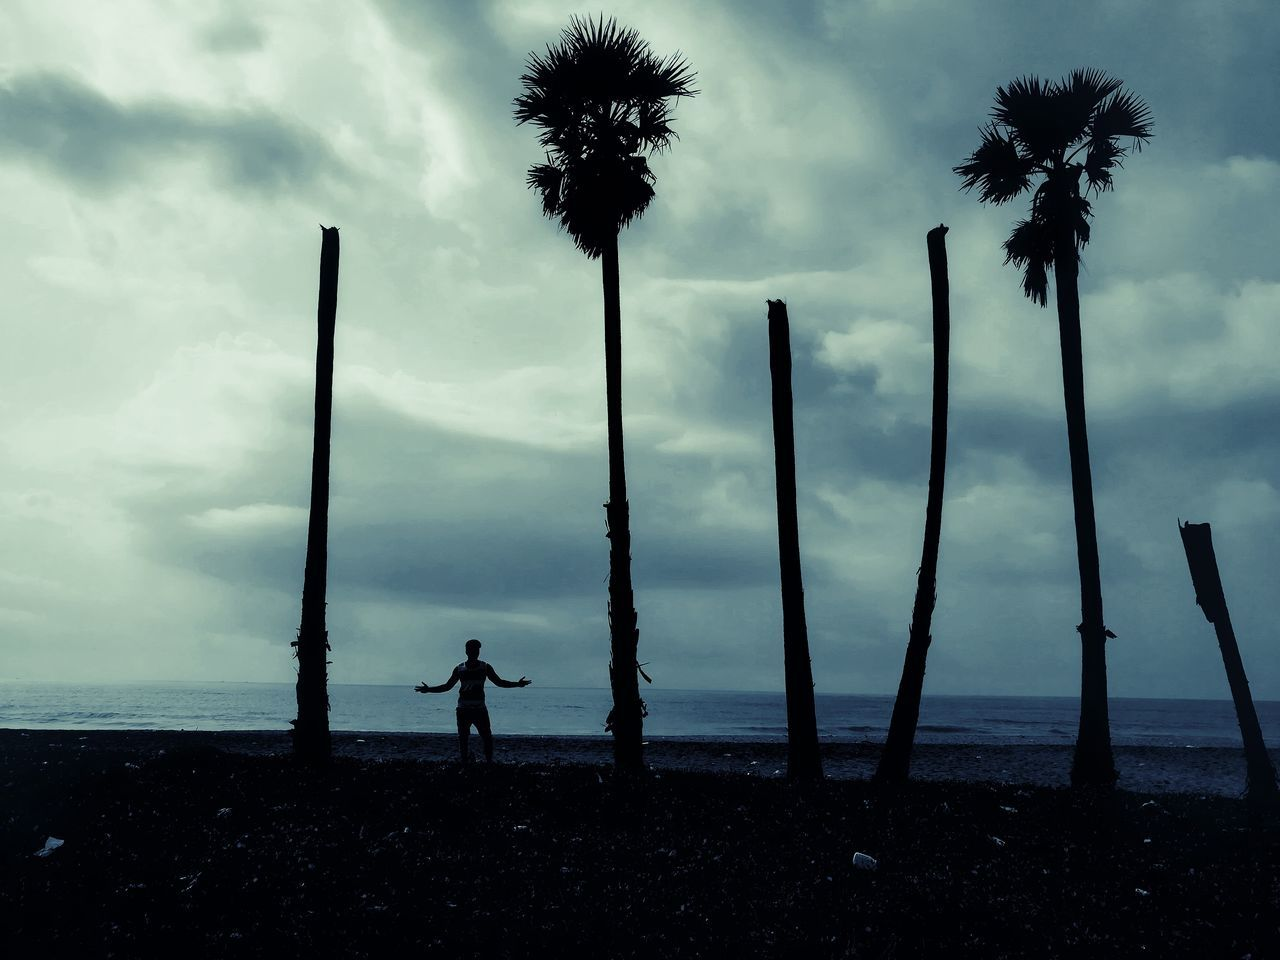 palm tree, tree, sky, one person, silhouette, sea, nature, beach, tree trunk, beauty in nature, cloud - sky, full length, leisure activity, outdoors, real people, lifestyles, scenics, men, day, standing, water, one man only, adult, people